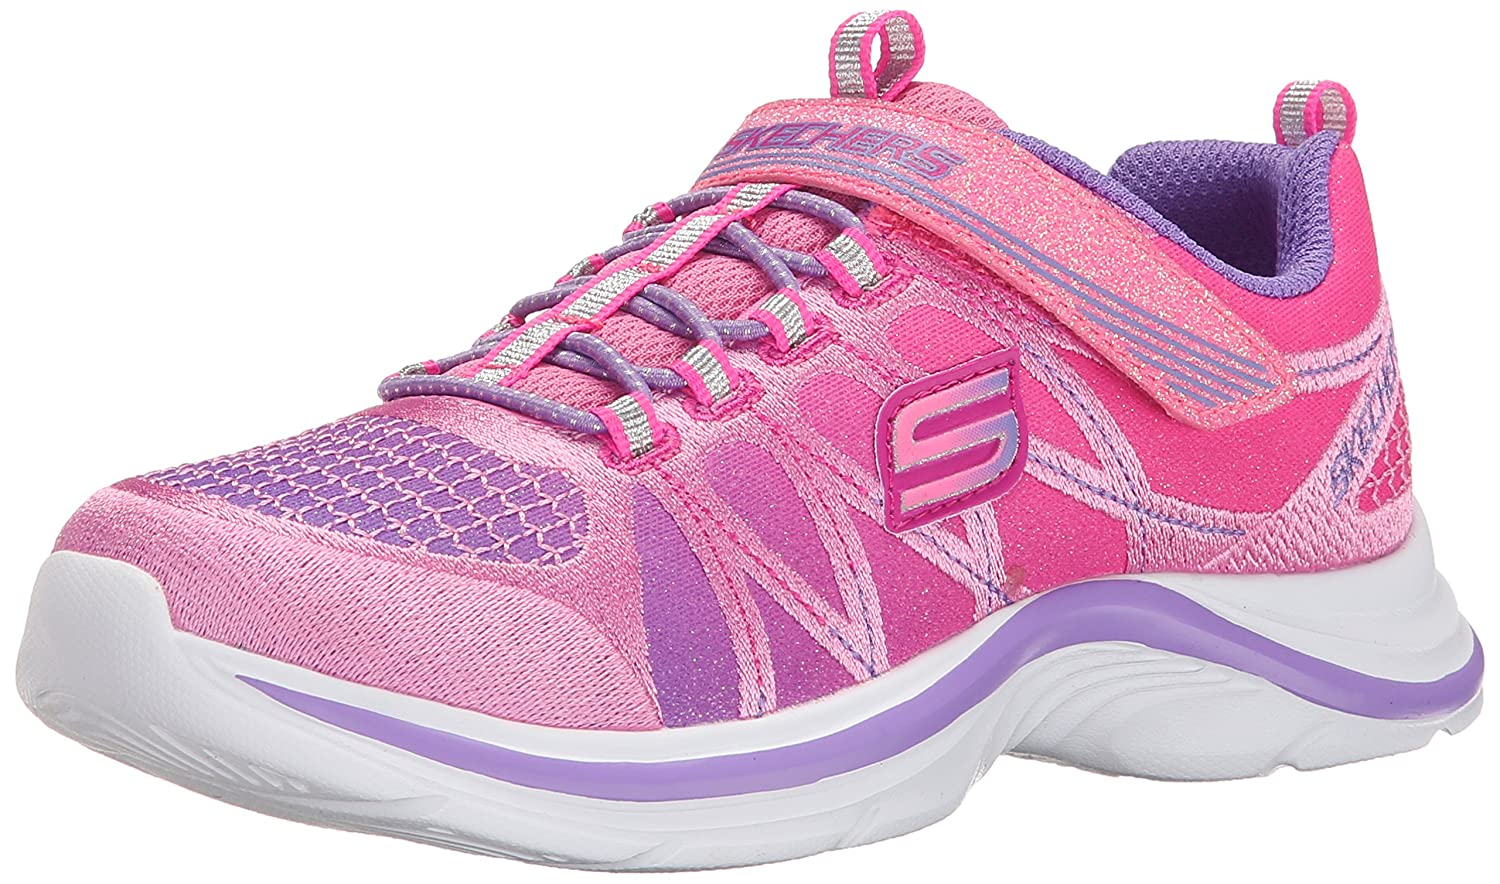 Skechers Kids Swift Kicks Training Shoe (Little Kid/Big Kid) Skechers Kids Footwear 81494L